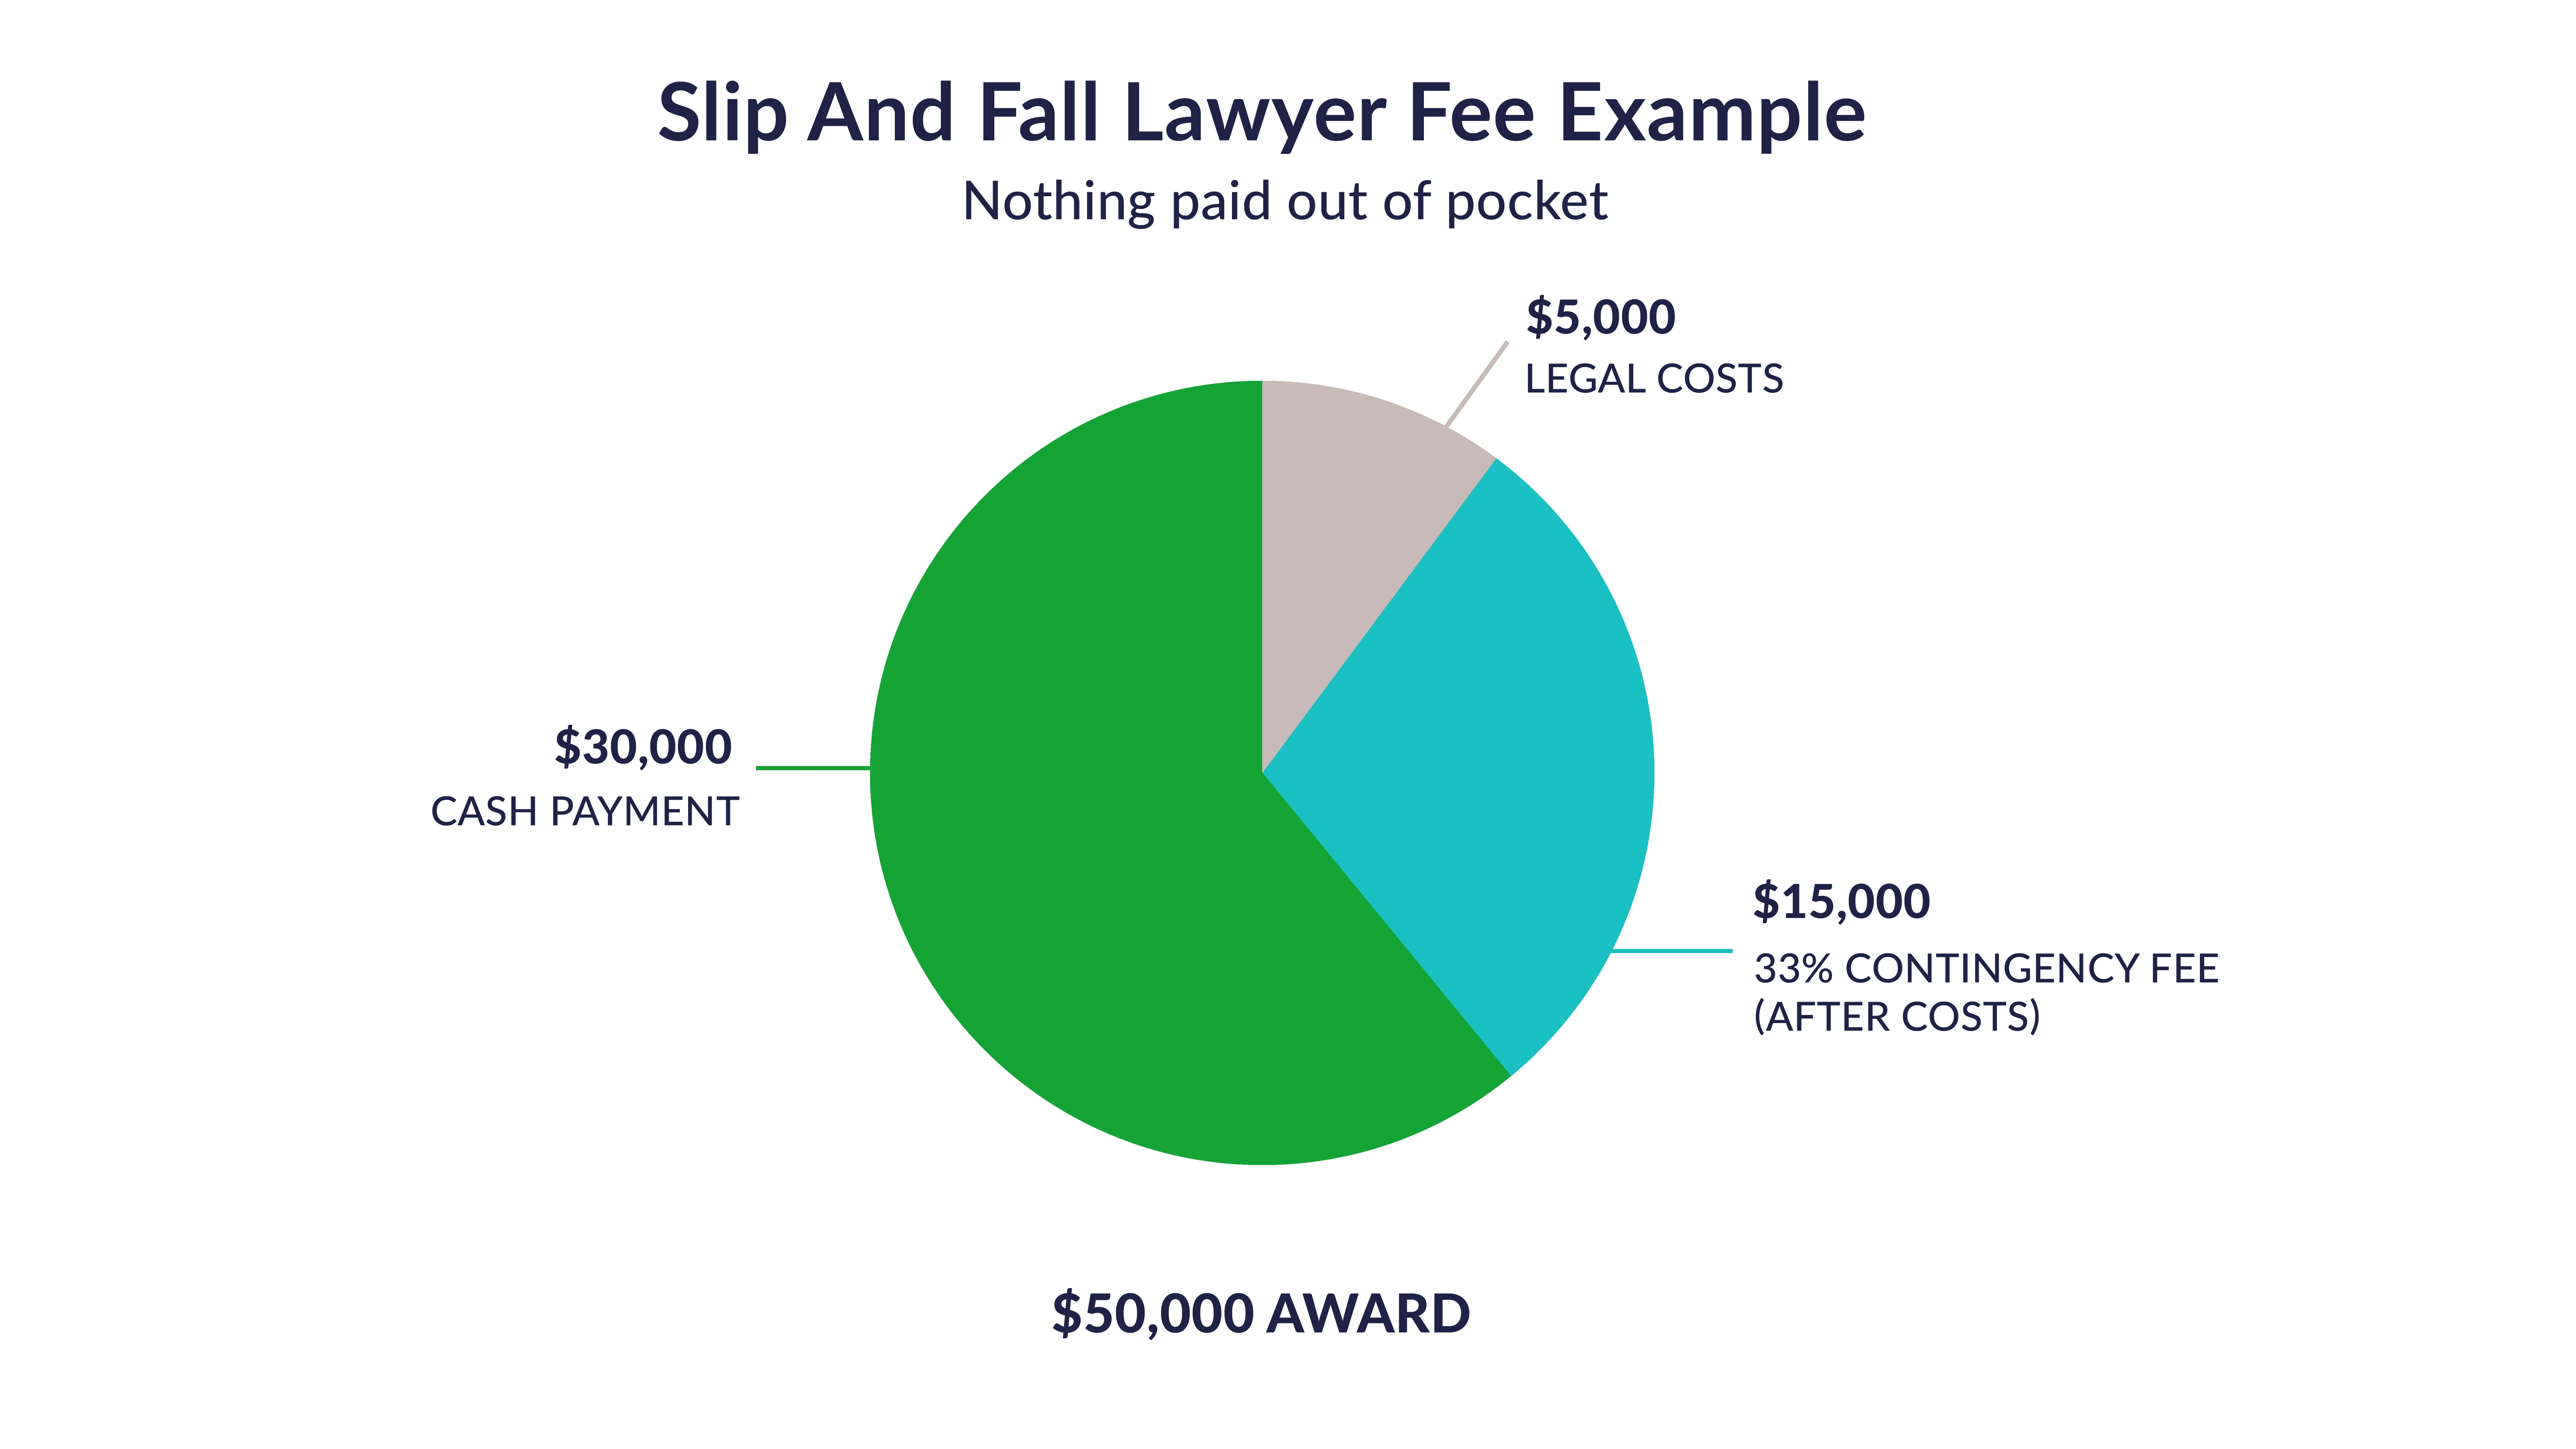 Example pie chart of a slip and fall lawyer fee